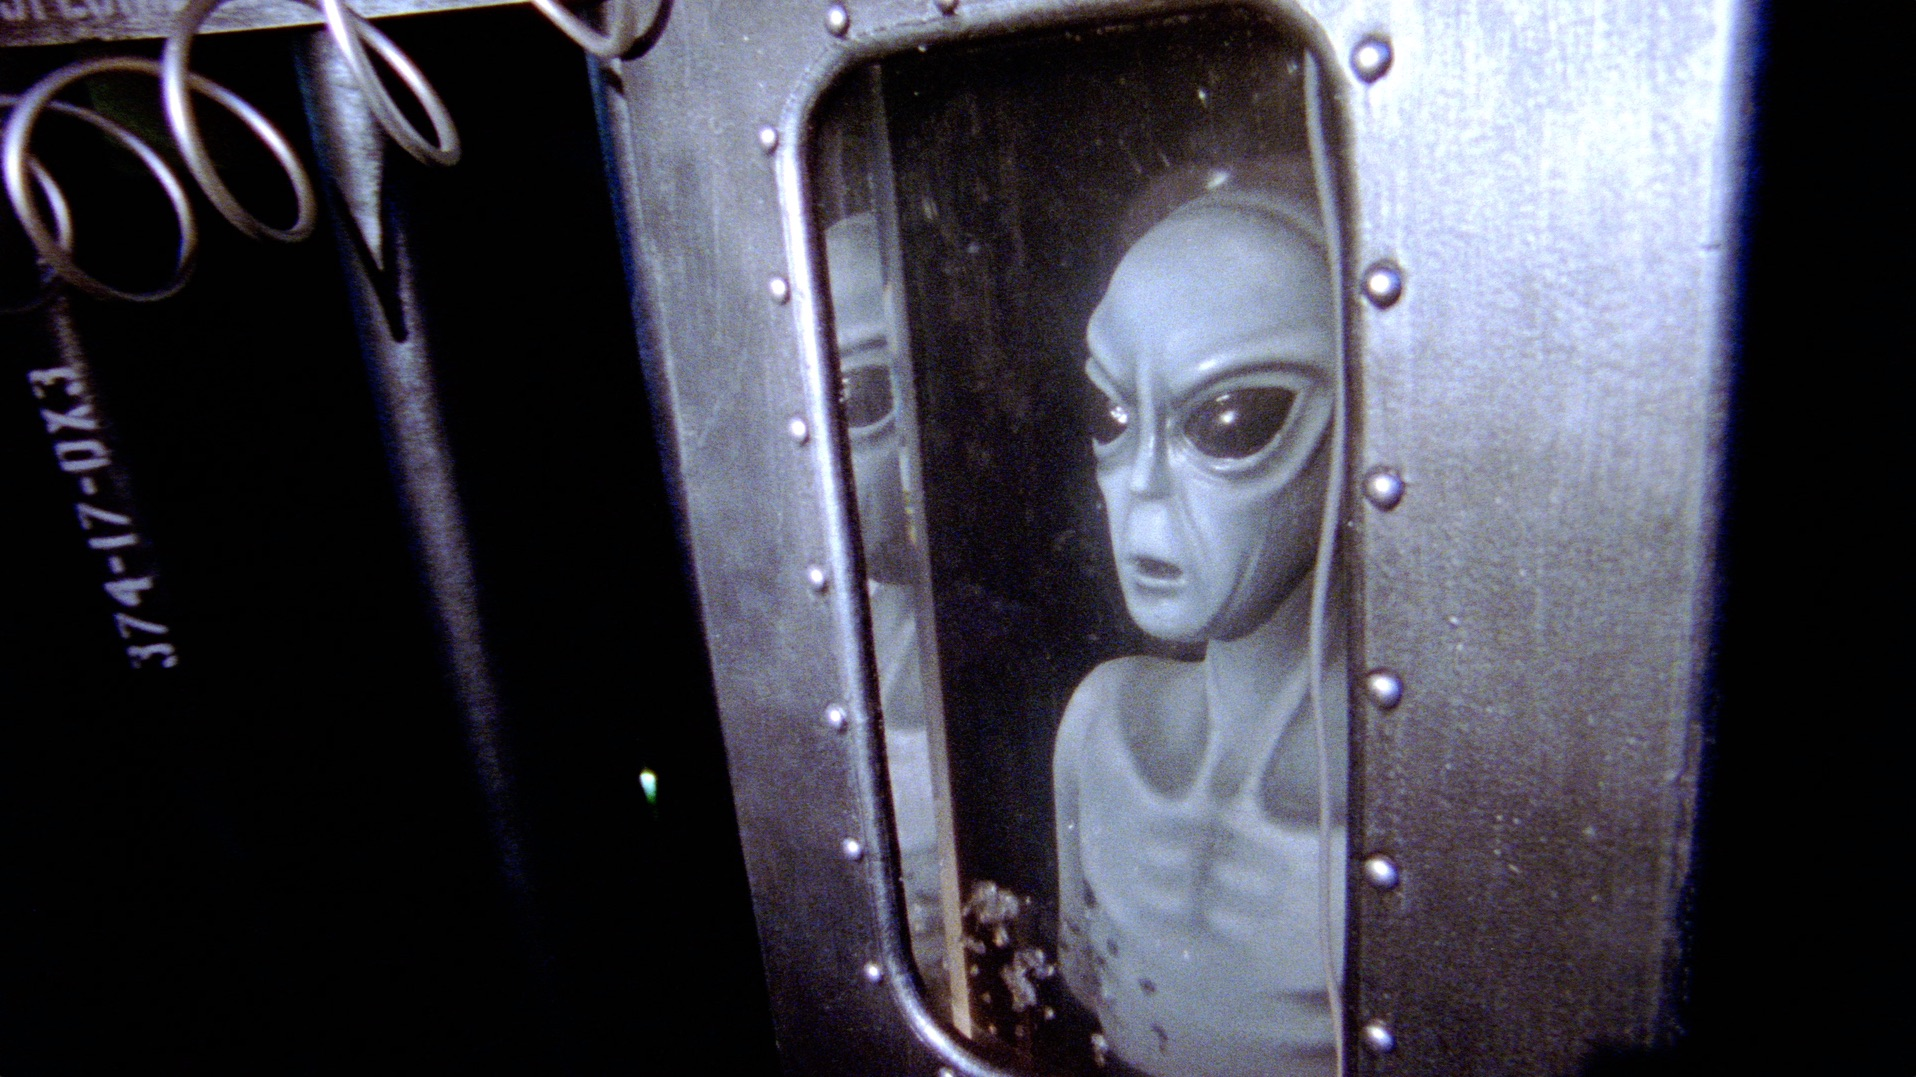 Do aliens exist? Roger Nygard's Six Days in Roswell documentary attempts to answer